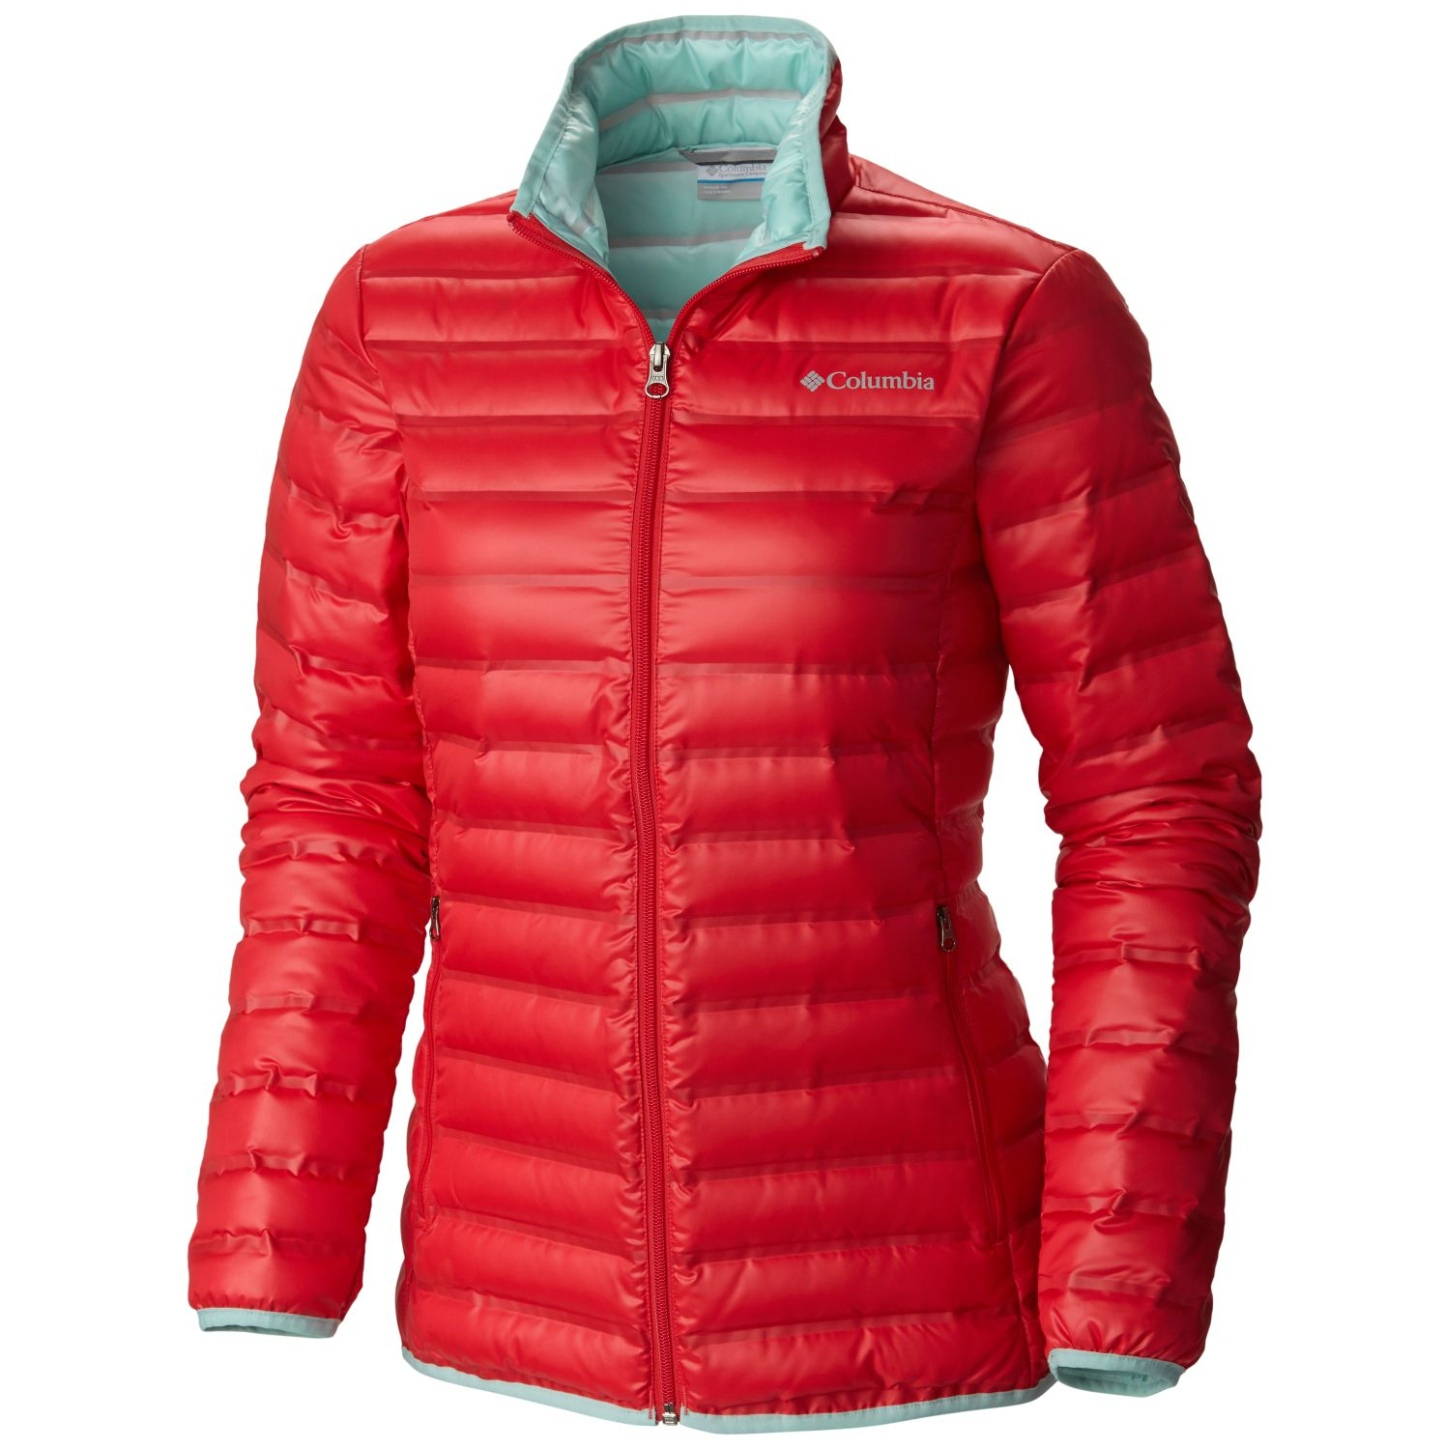 Columbia Flash Forward Daunenjacke für Damen Red Camellia, Spray-30